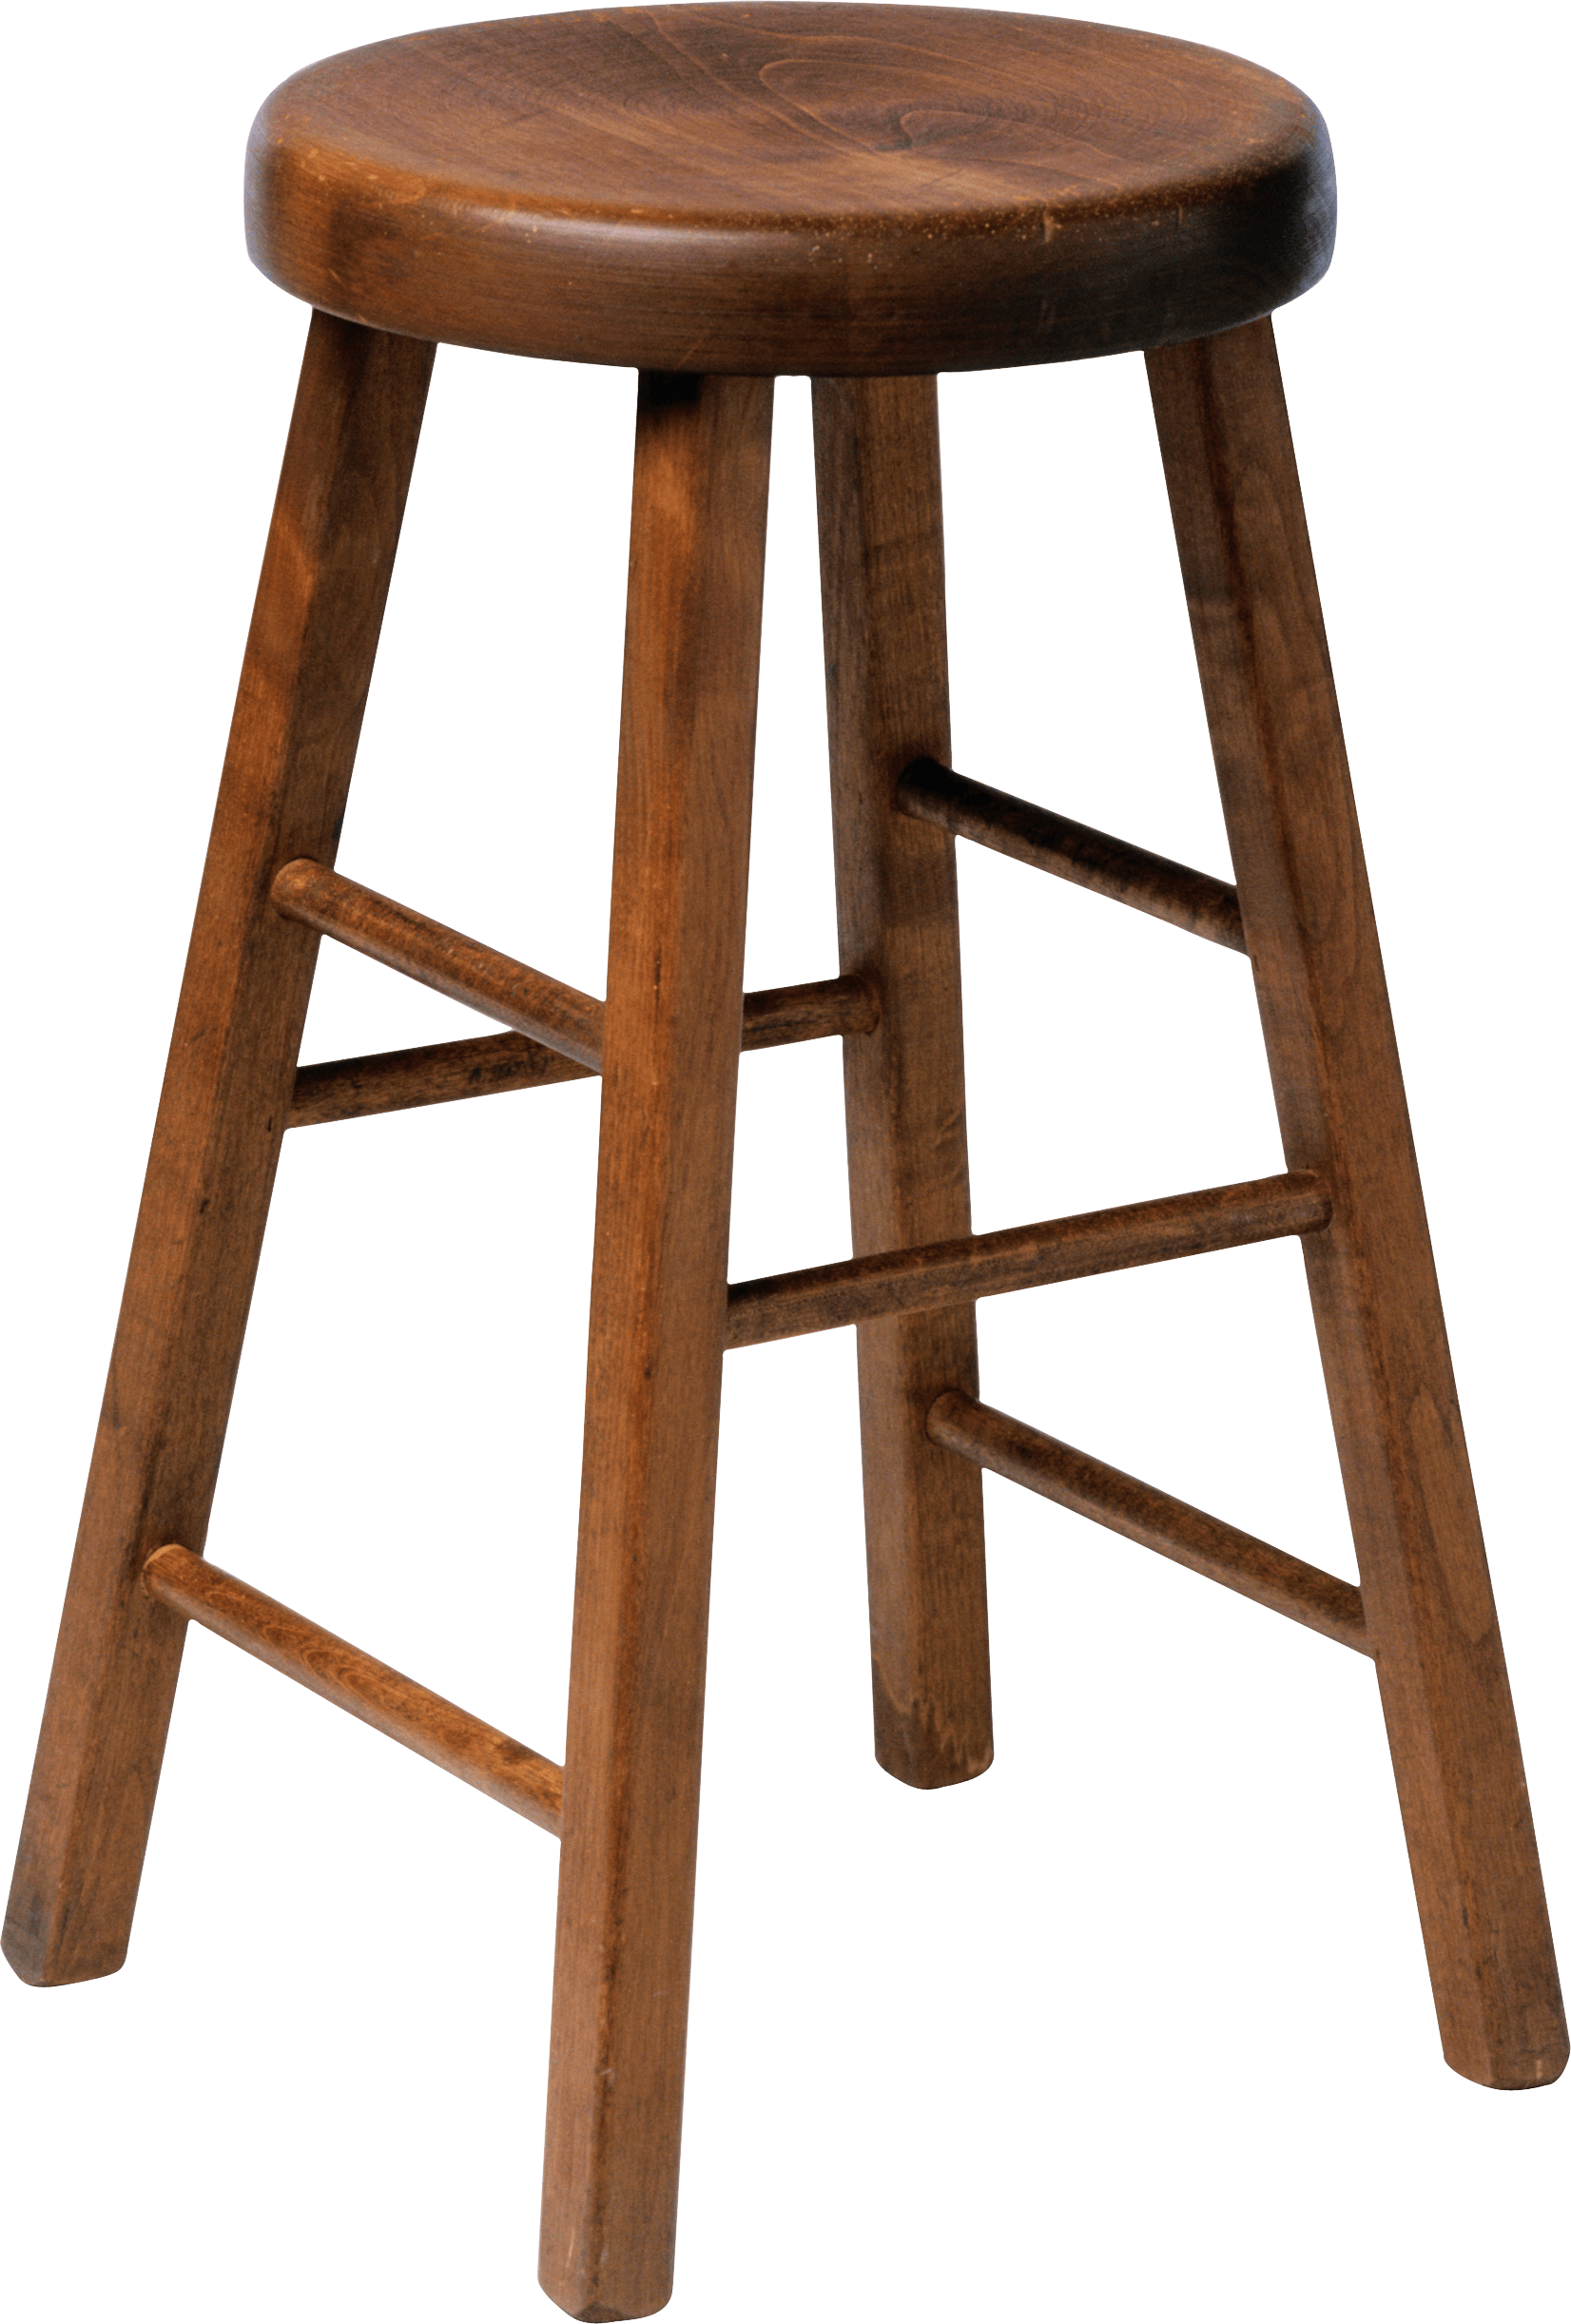 Chair Png image #40541